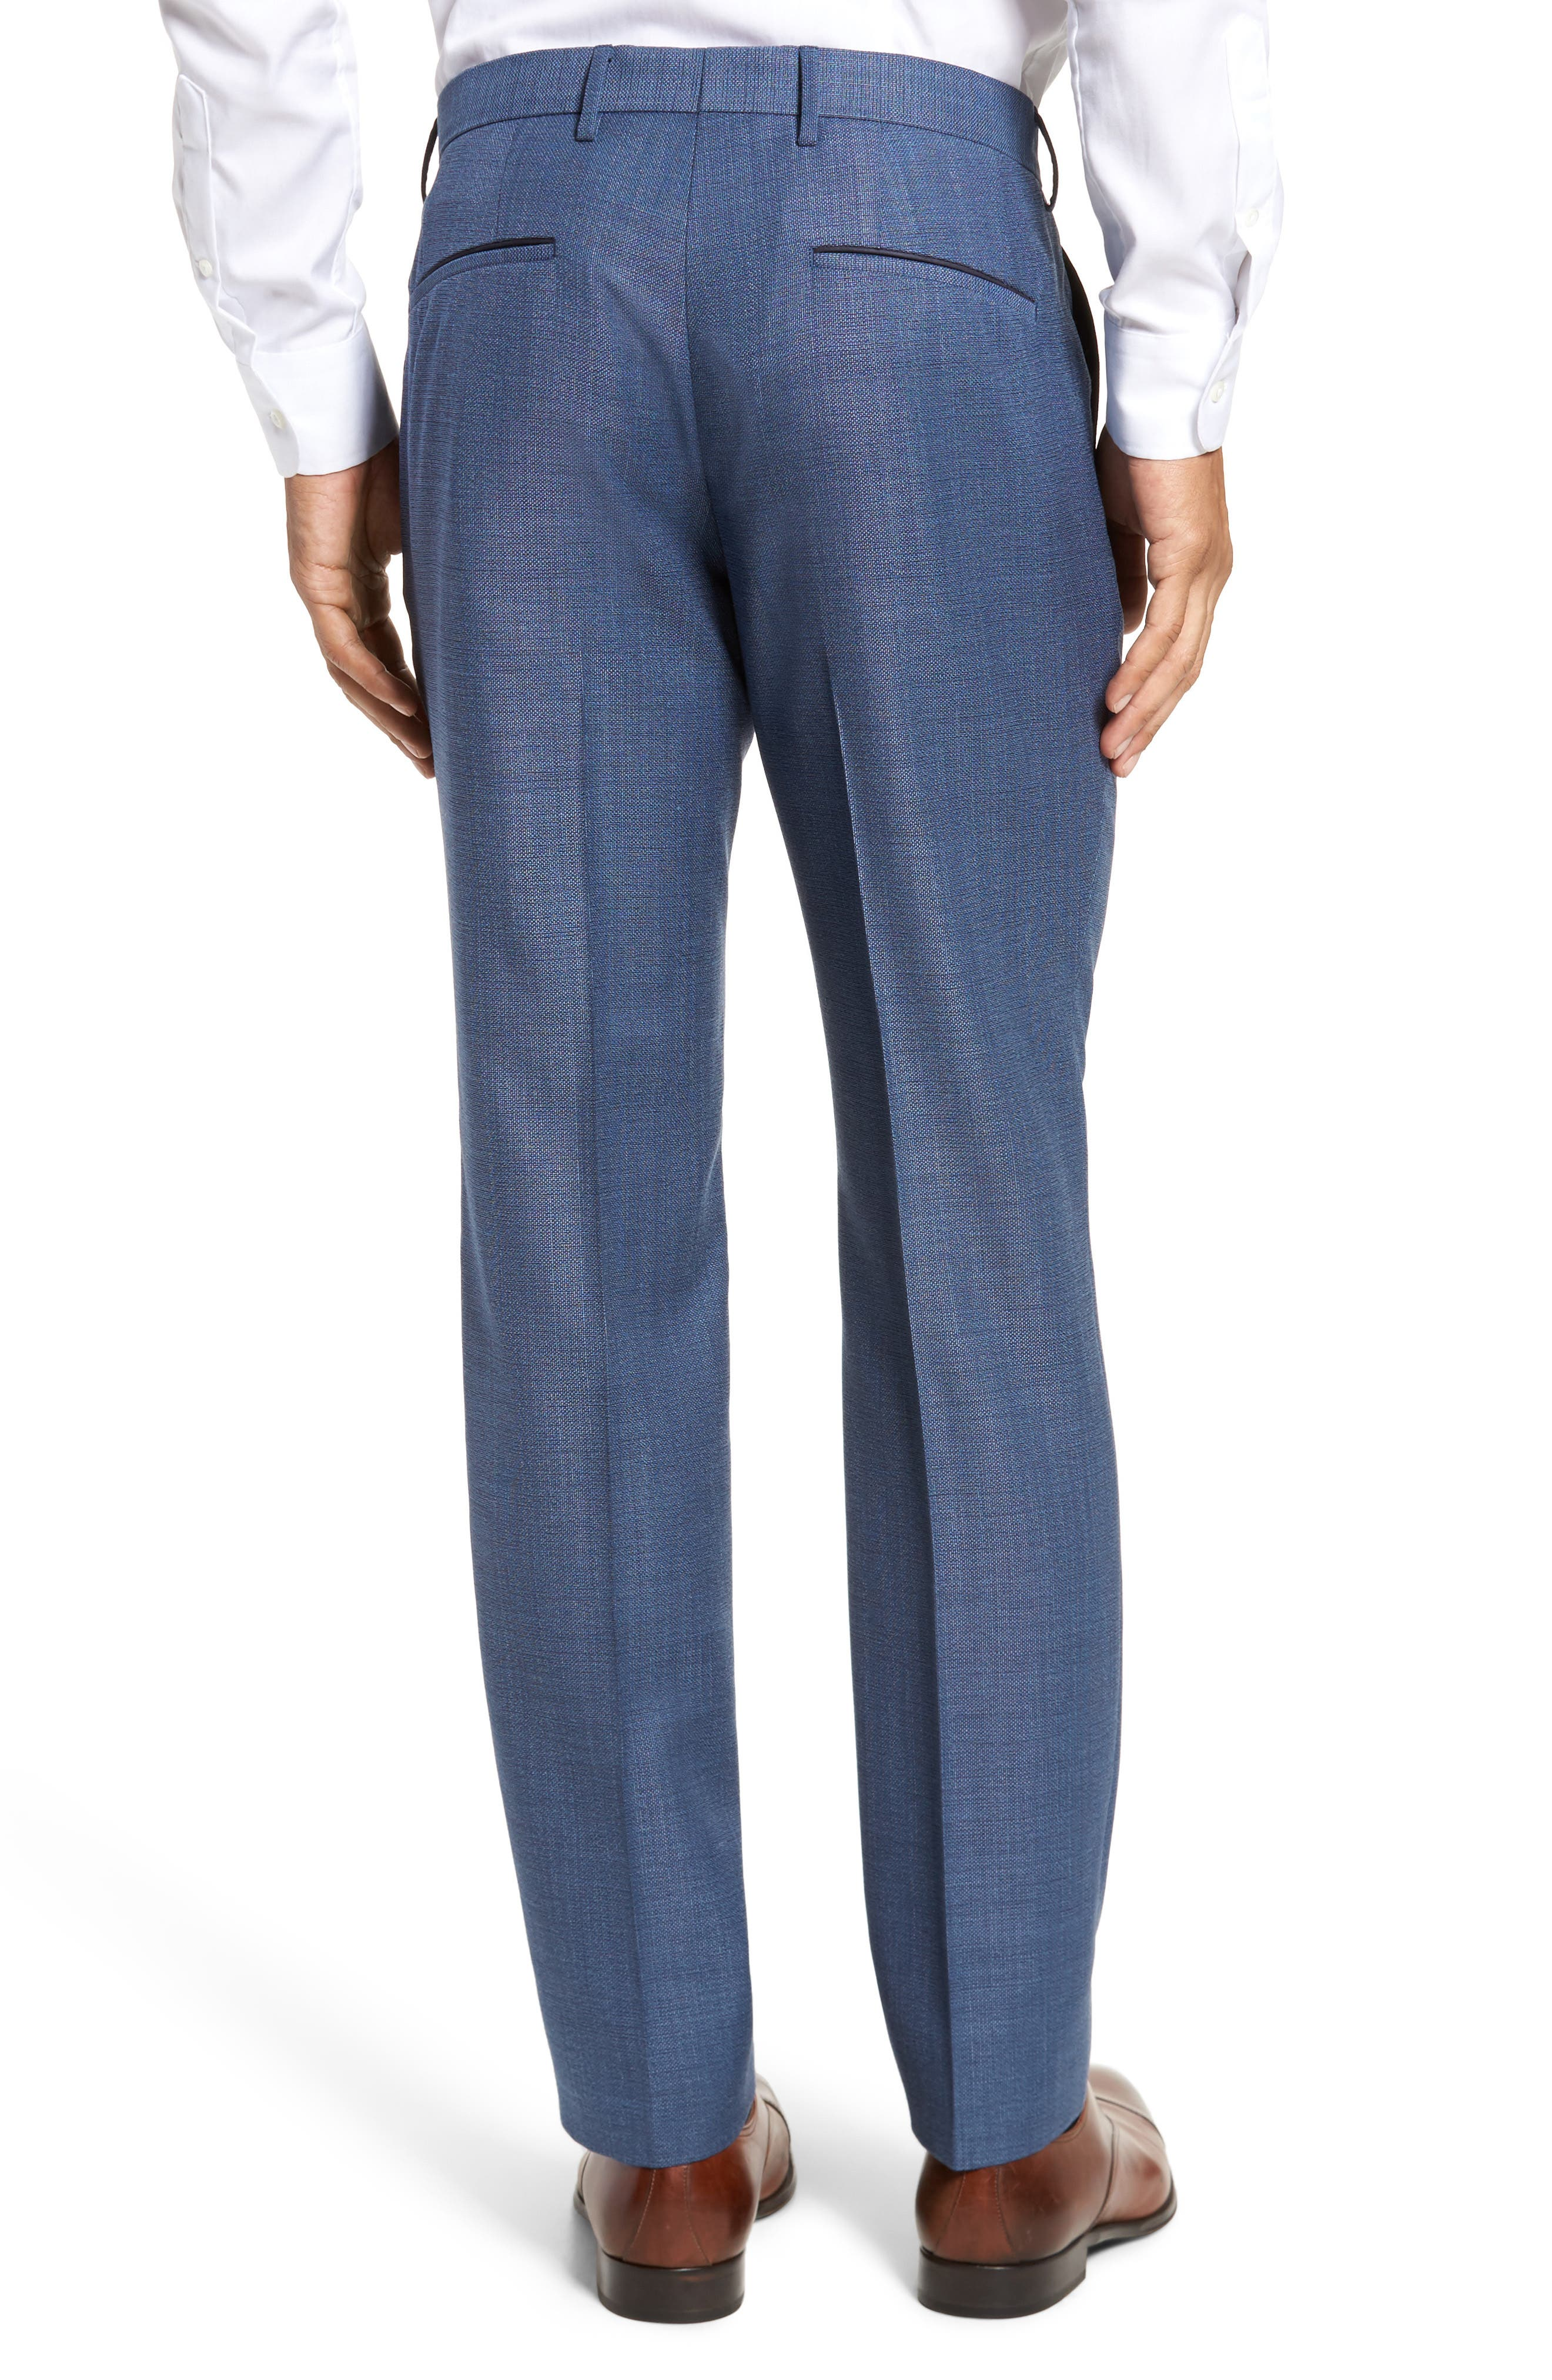 Blake Flat Front Trim Fit Solid Wool Trousers,                             Alternate thumbnail 3, color,                             420